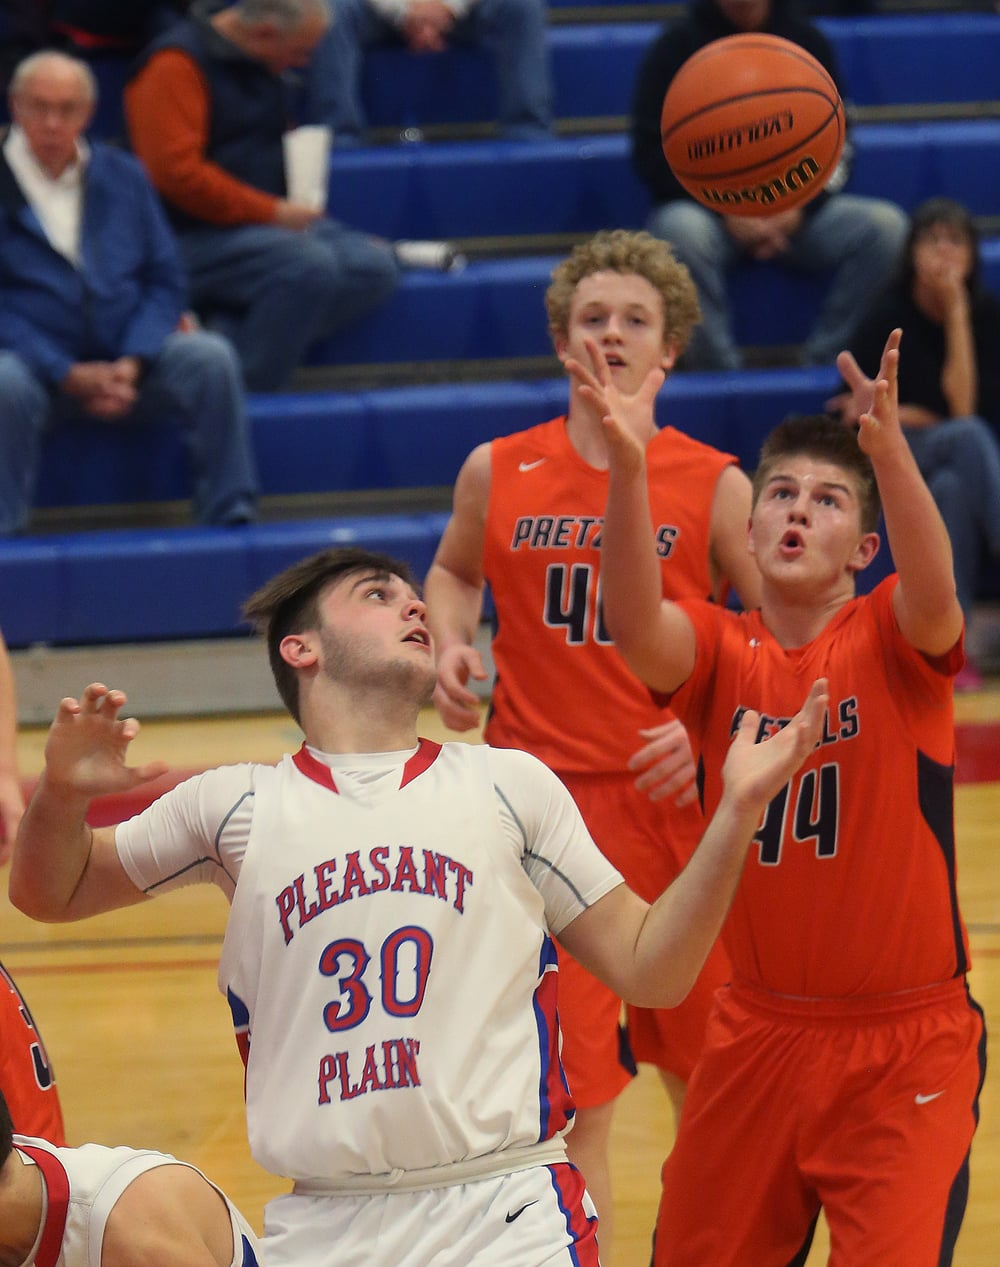 New Berlin player Casey Bixby prepares to snag a rebound while Pleasant Plains player Austin Finley looks on at left. David Spencer/The State Journal Register